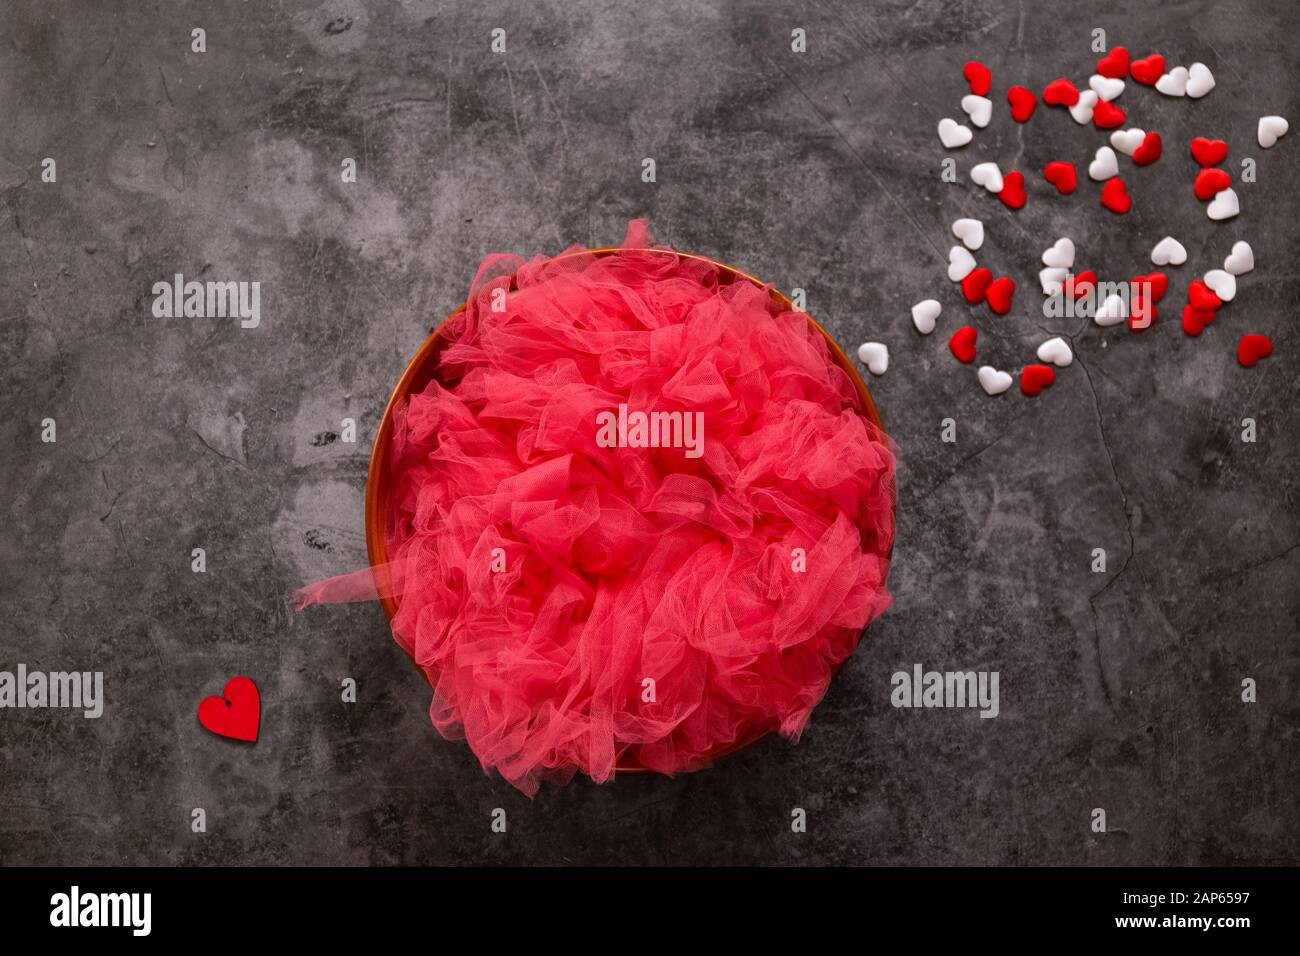 Newborn Photography Digital Background For A Valentine S Day Red And White Hearts And A Bowl Stock Photo Alamy